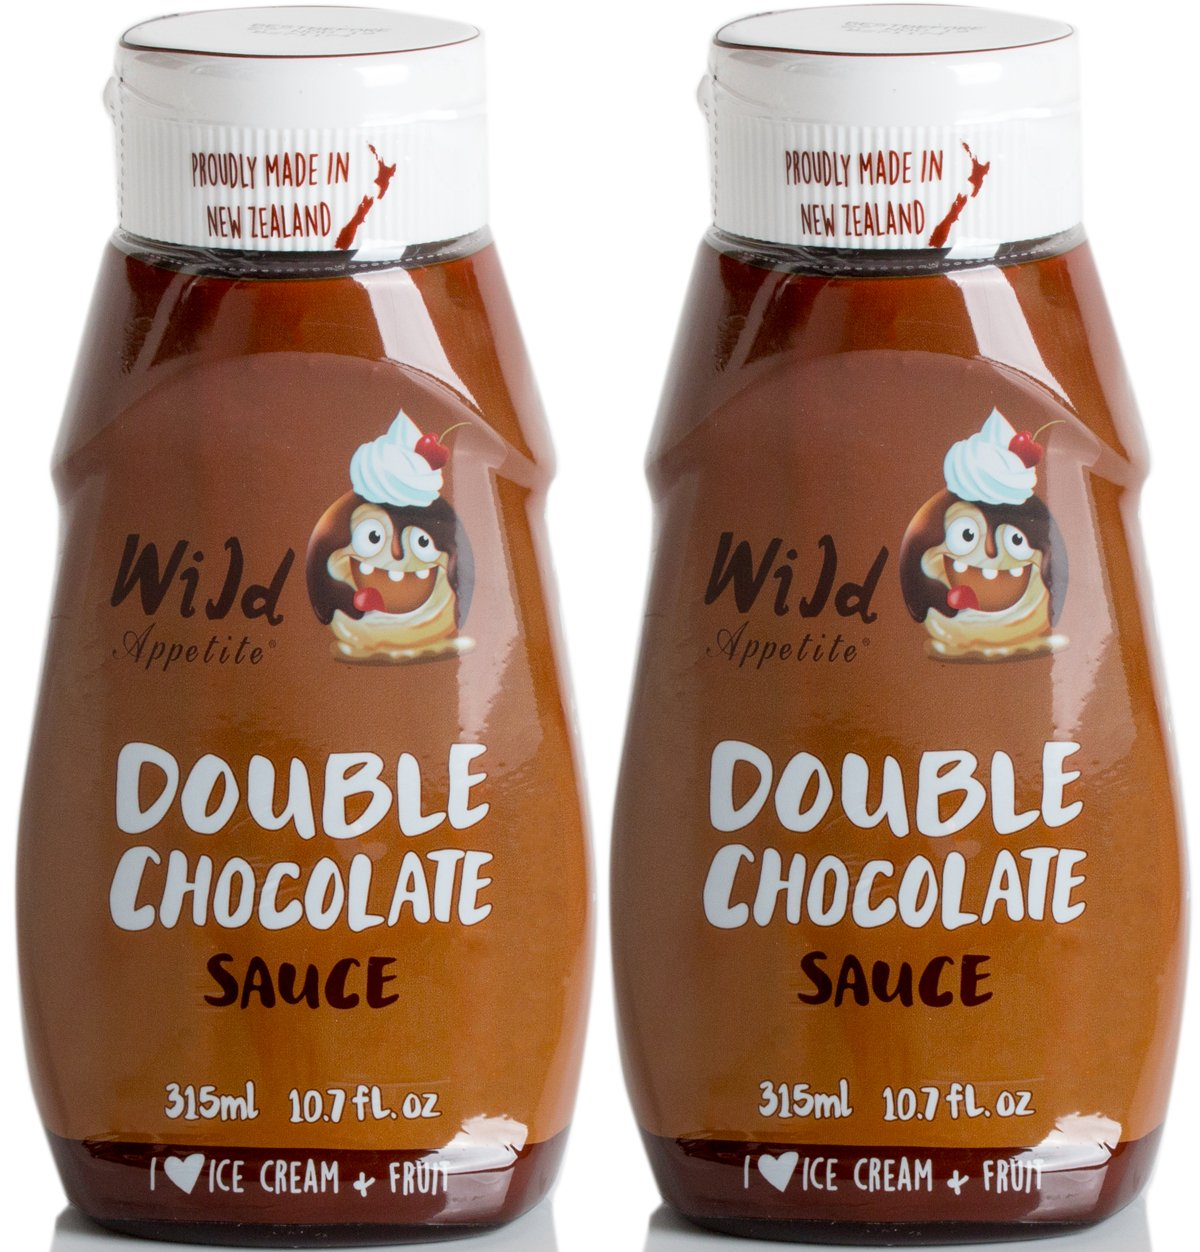 Wild Appetite, Double Chocolate Sauce 2 pack, 2 x 315ml (10.6oz) by Wild Appetite (Image #1)